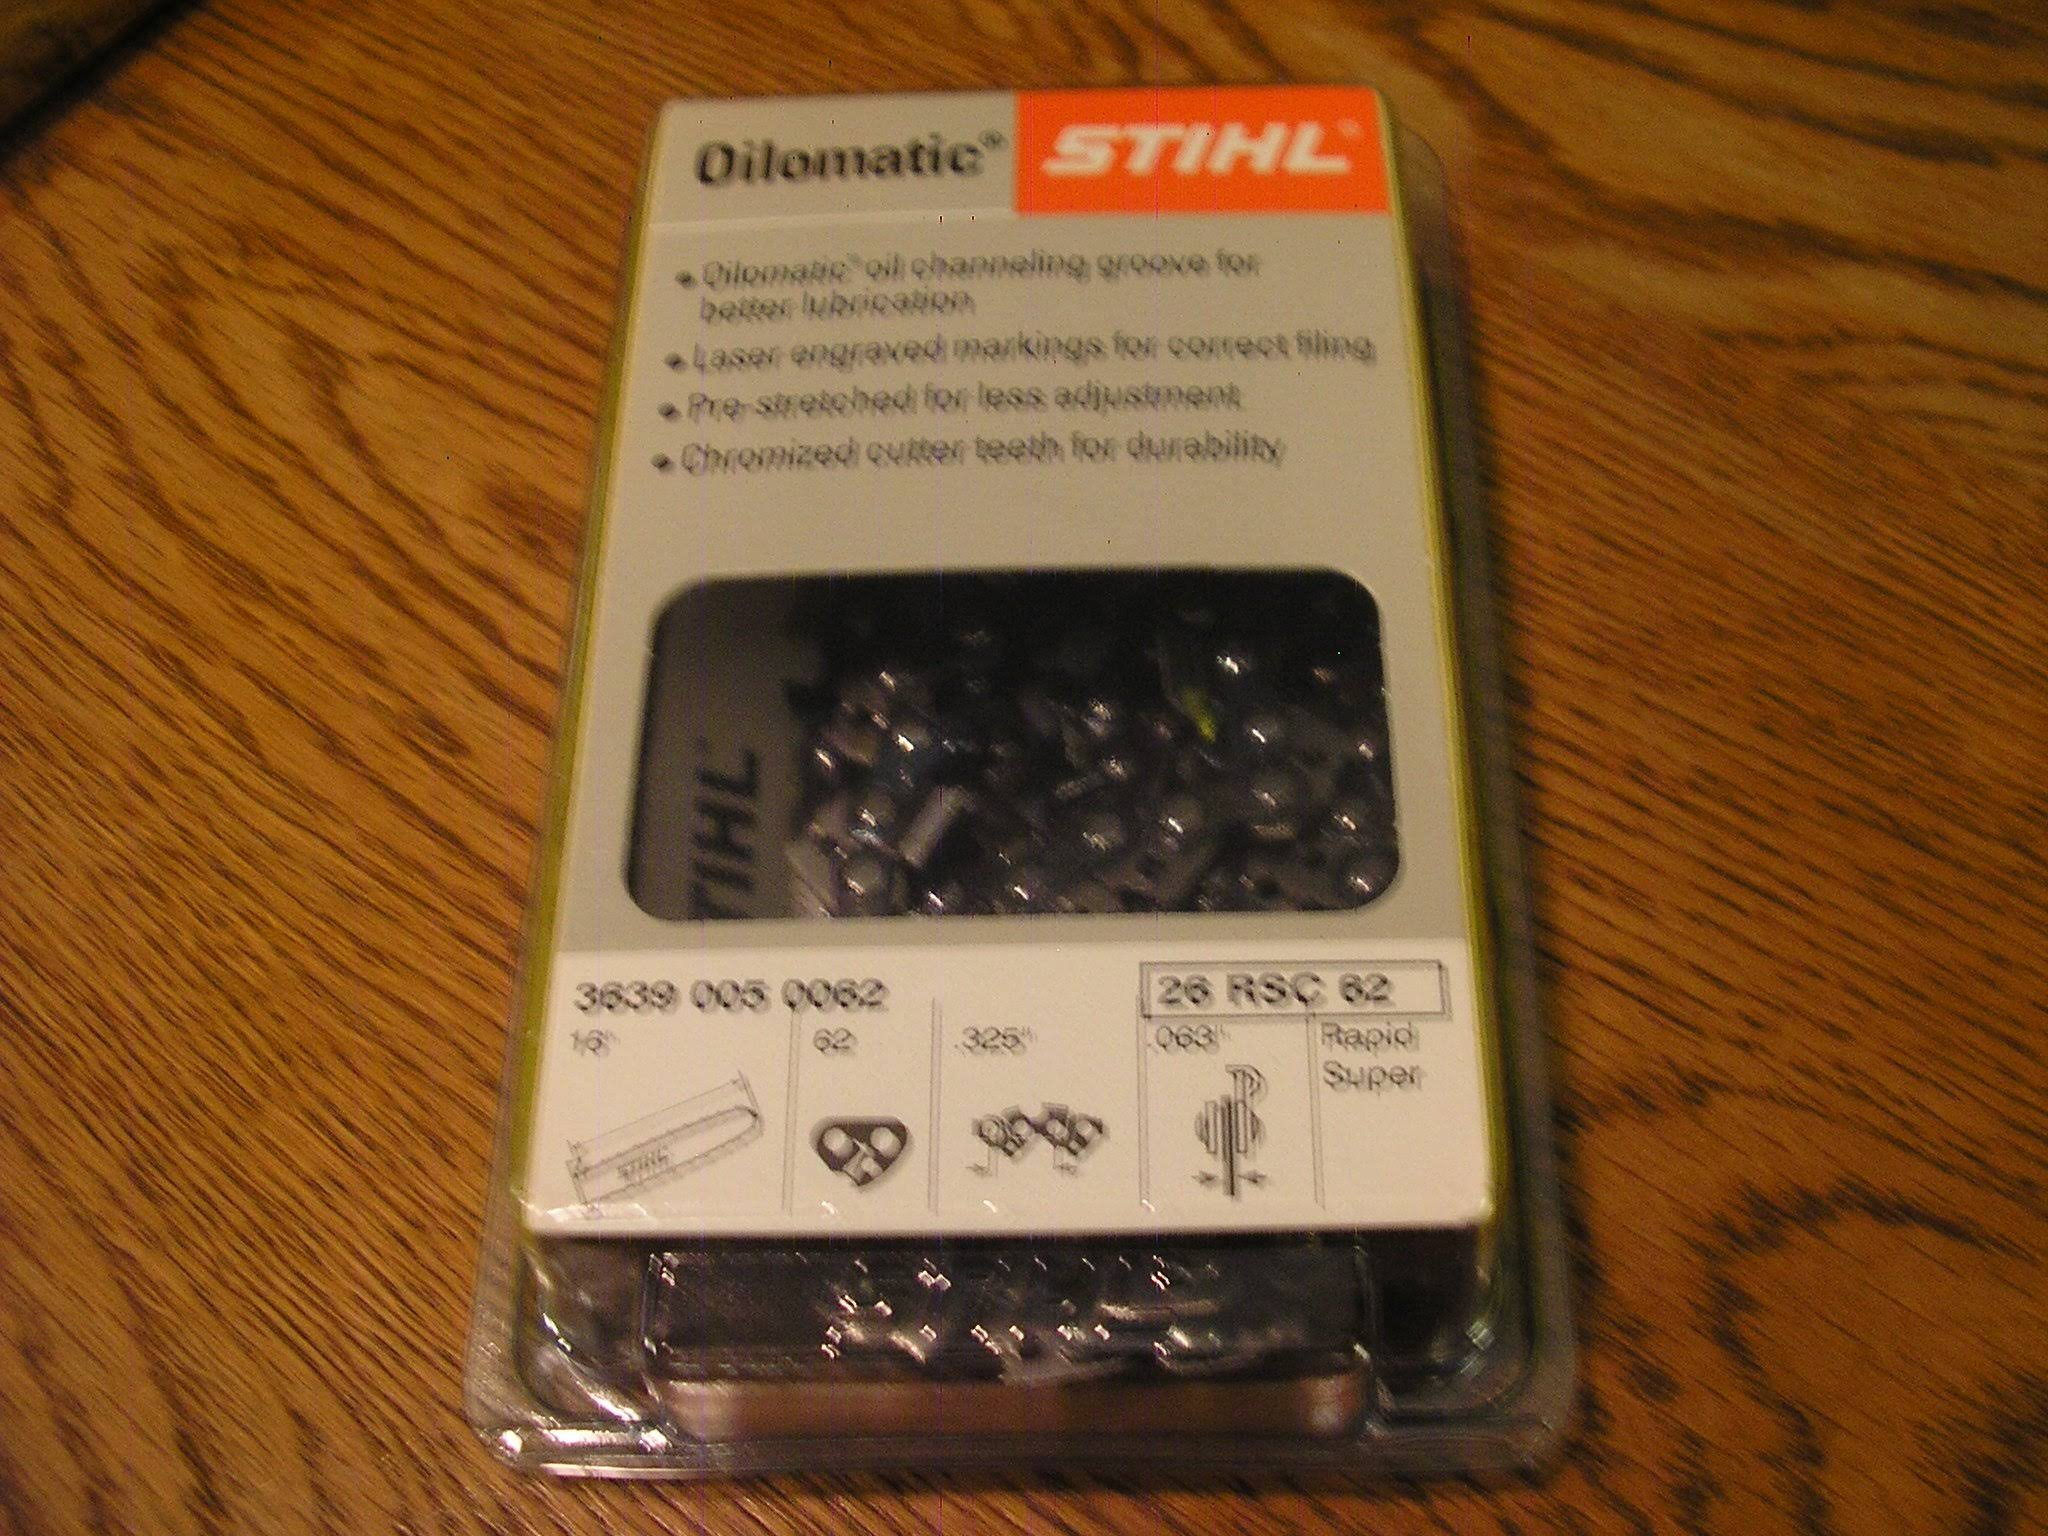 "Stihl Oilomatic 3 Saw Chain - 16"", 0.63 gauge"